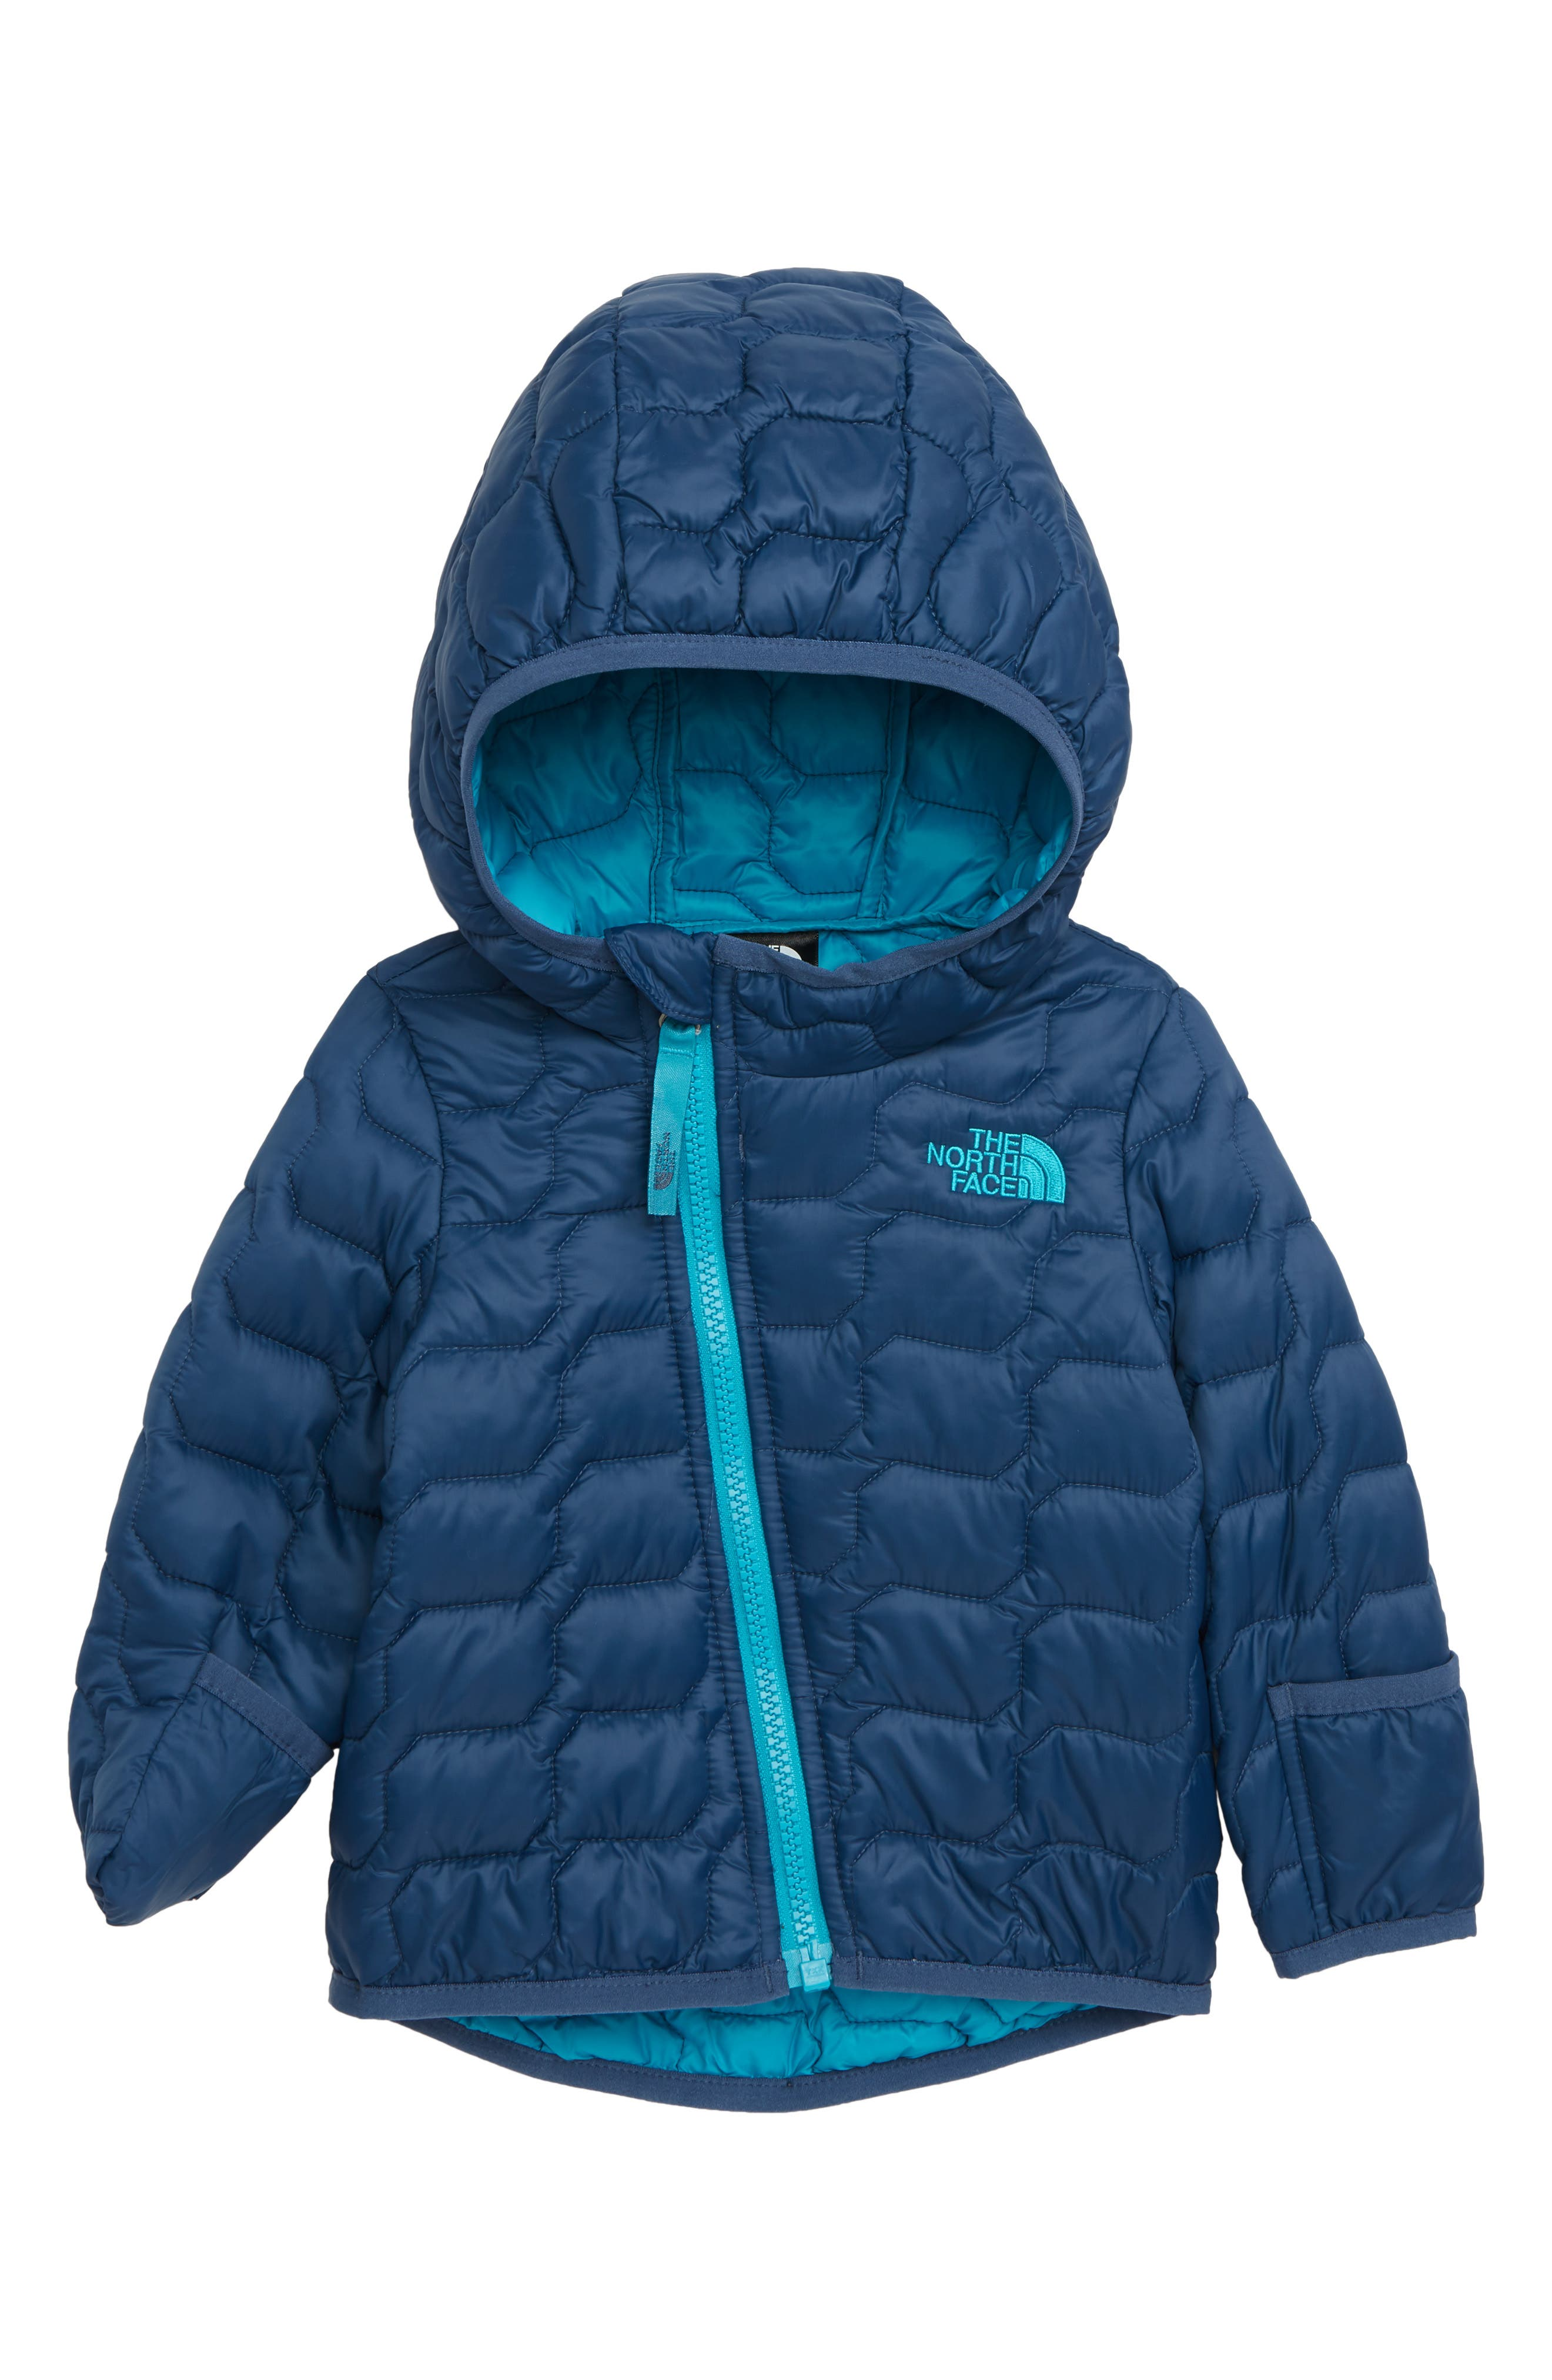 THE NORTH FACE, ThermoBall<sup>™</sup> Hooded Coat, Main thumbnail 1, color, SHADY BLUE